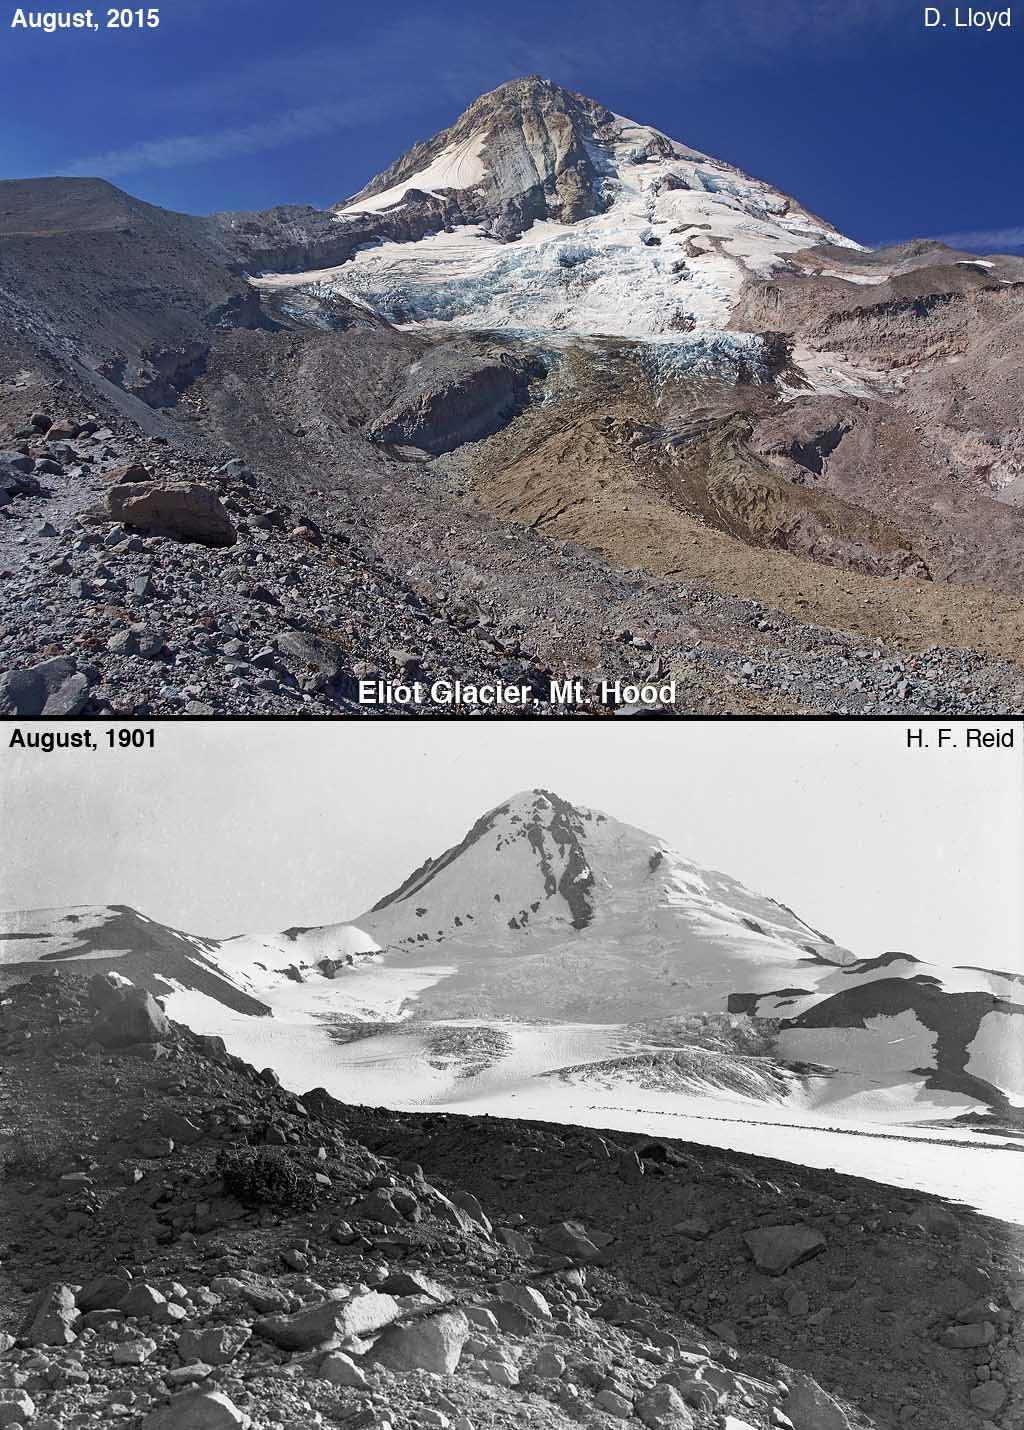 The Palmer Snowfield is near the Eliot Glacier on Mt. Hood. Historic photos compare the glacial mass of August 1901 to August 2015. Darryl Lloyd